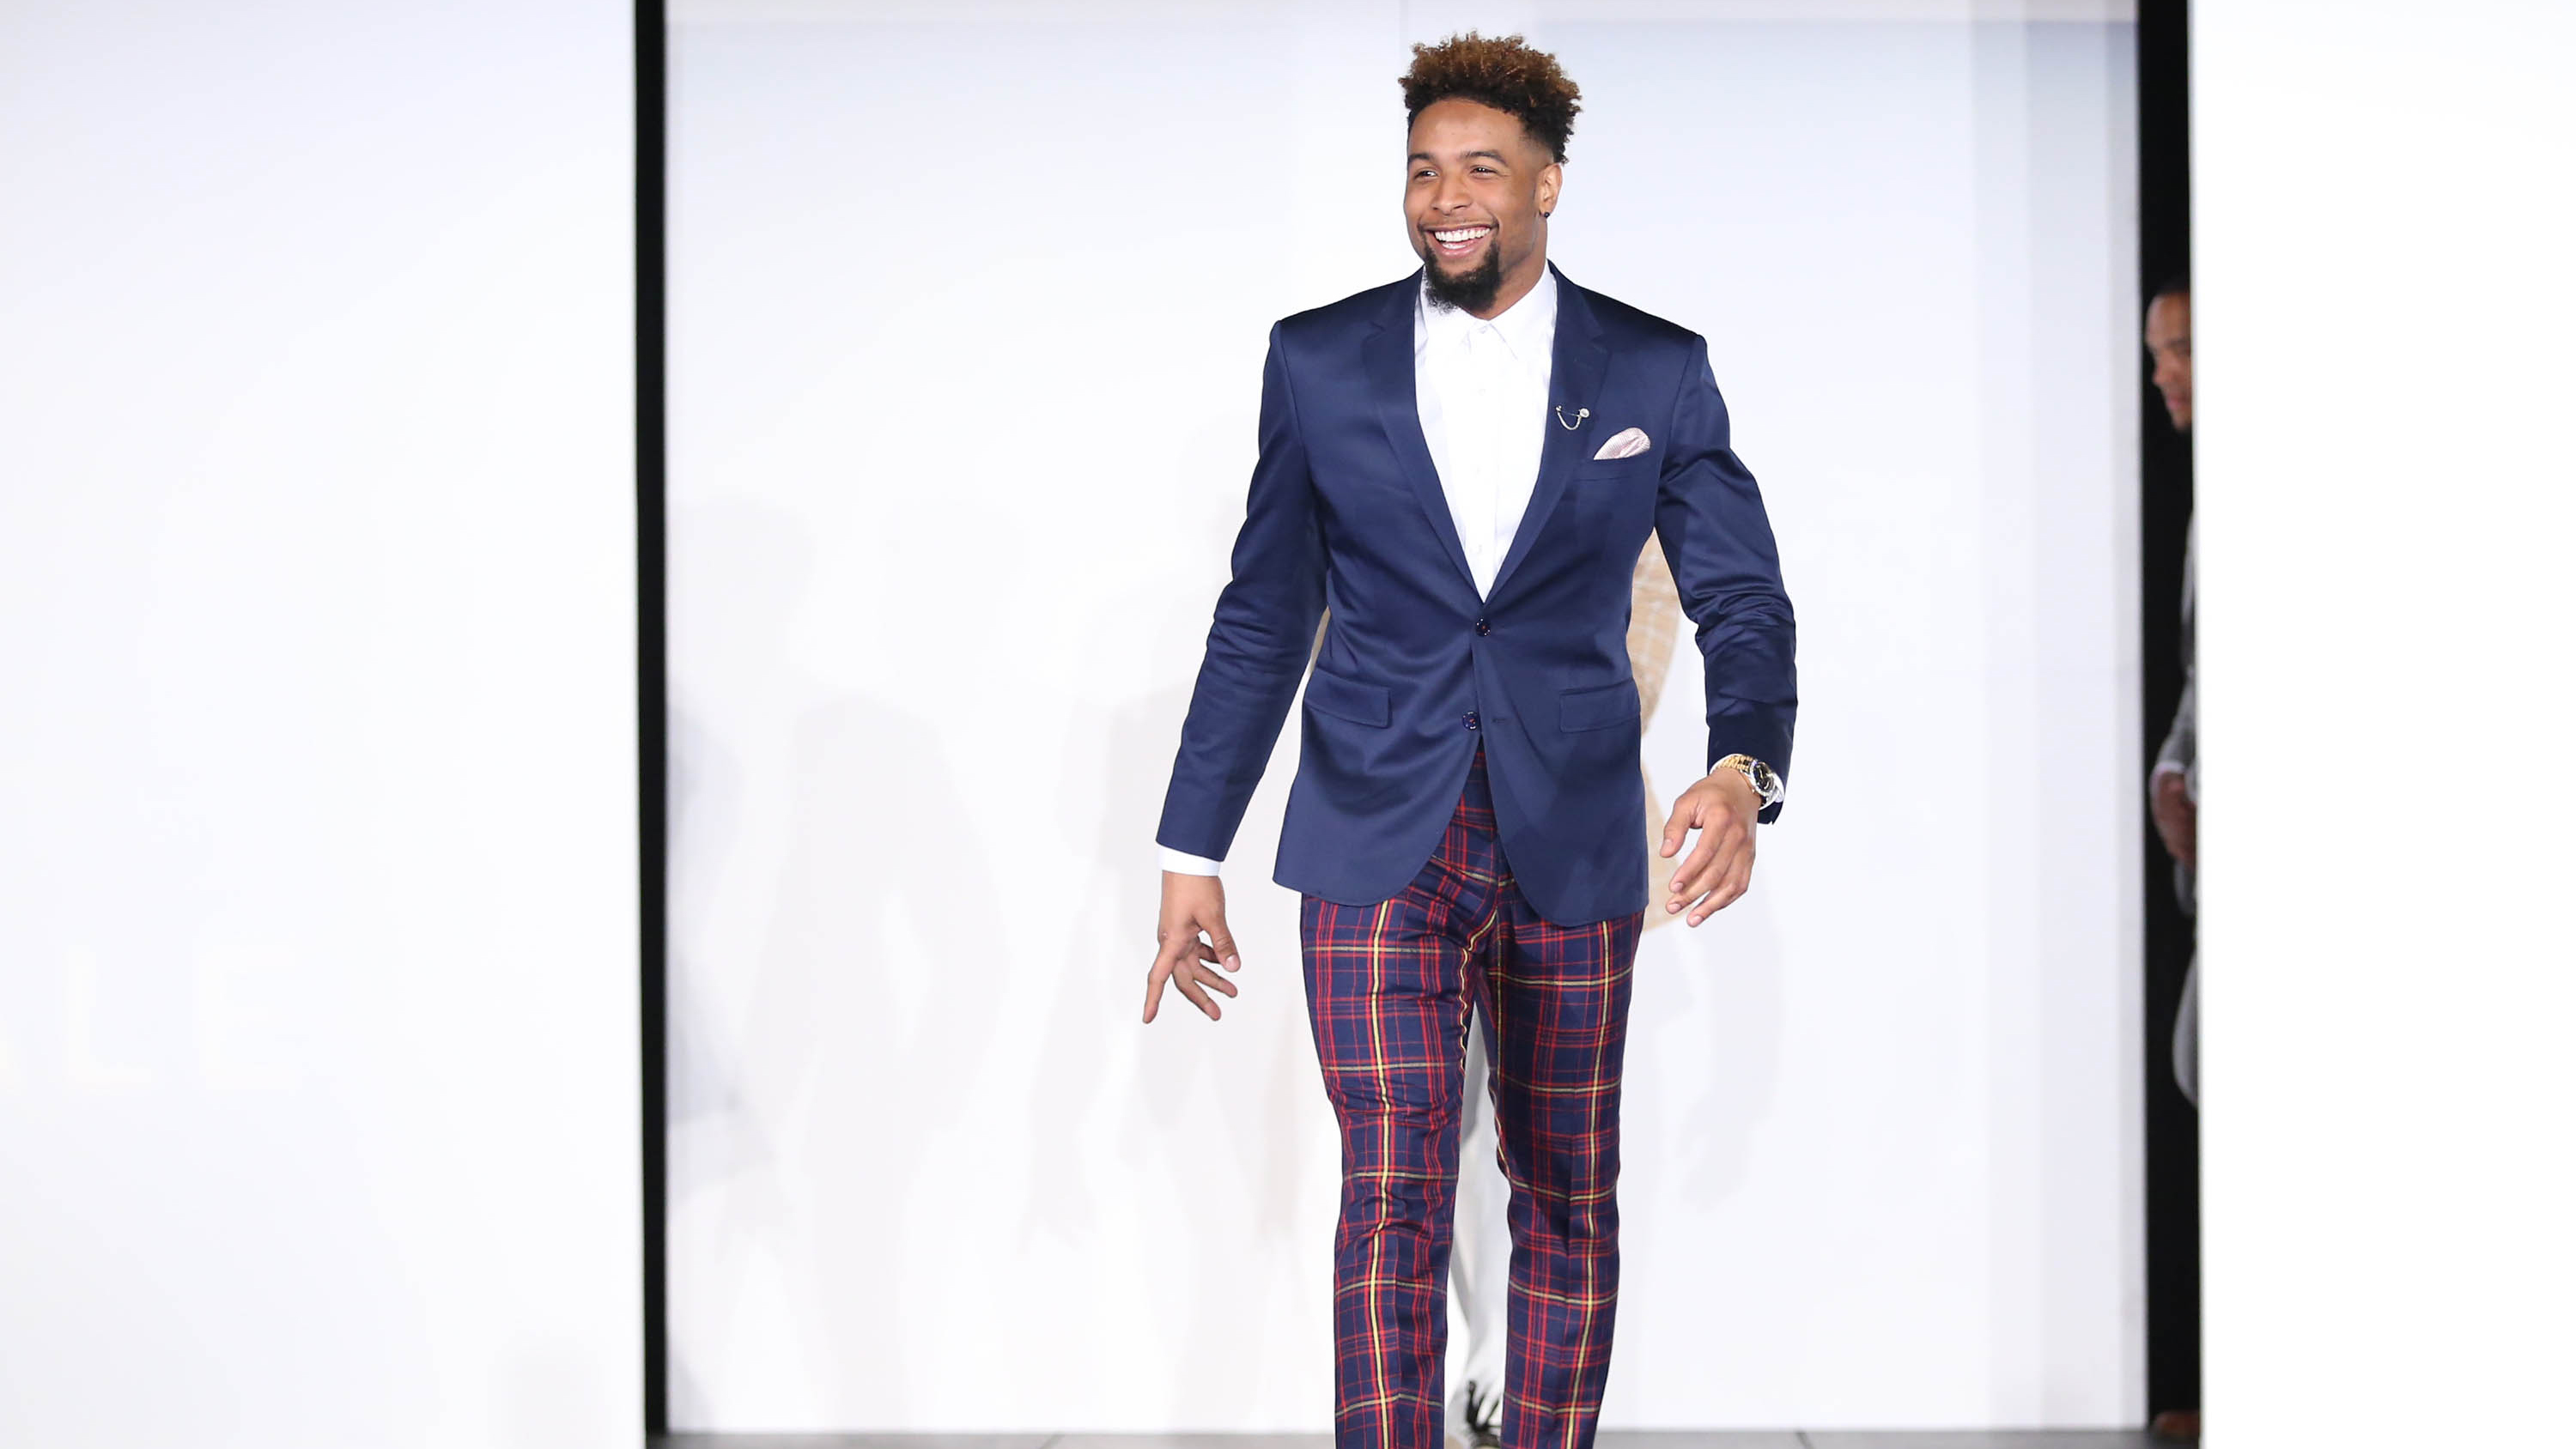 NFL Fan Pass | All Things NFL | NFL.com | Suits, sneakers and smiles